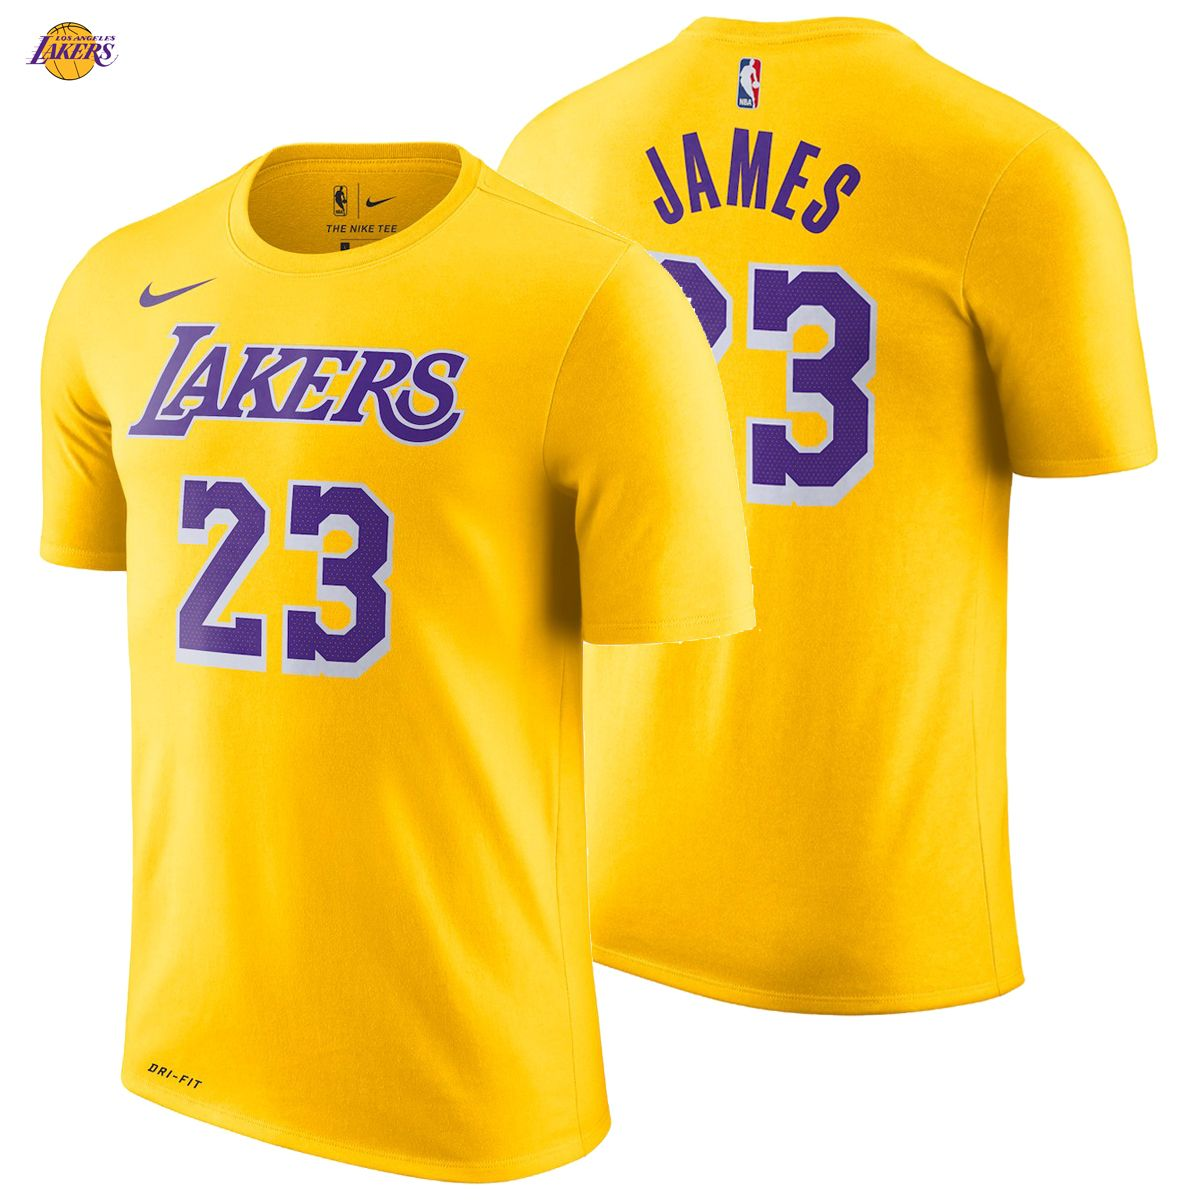 6e0a0903c772 LeBron James Los Angeles Lakers Nike T-Shirt 2018 19 Icon Edition Name  Number Yellow 23 The King NEW NWT Show LeBron your support by grabbing this  Los ...